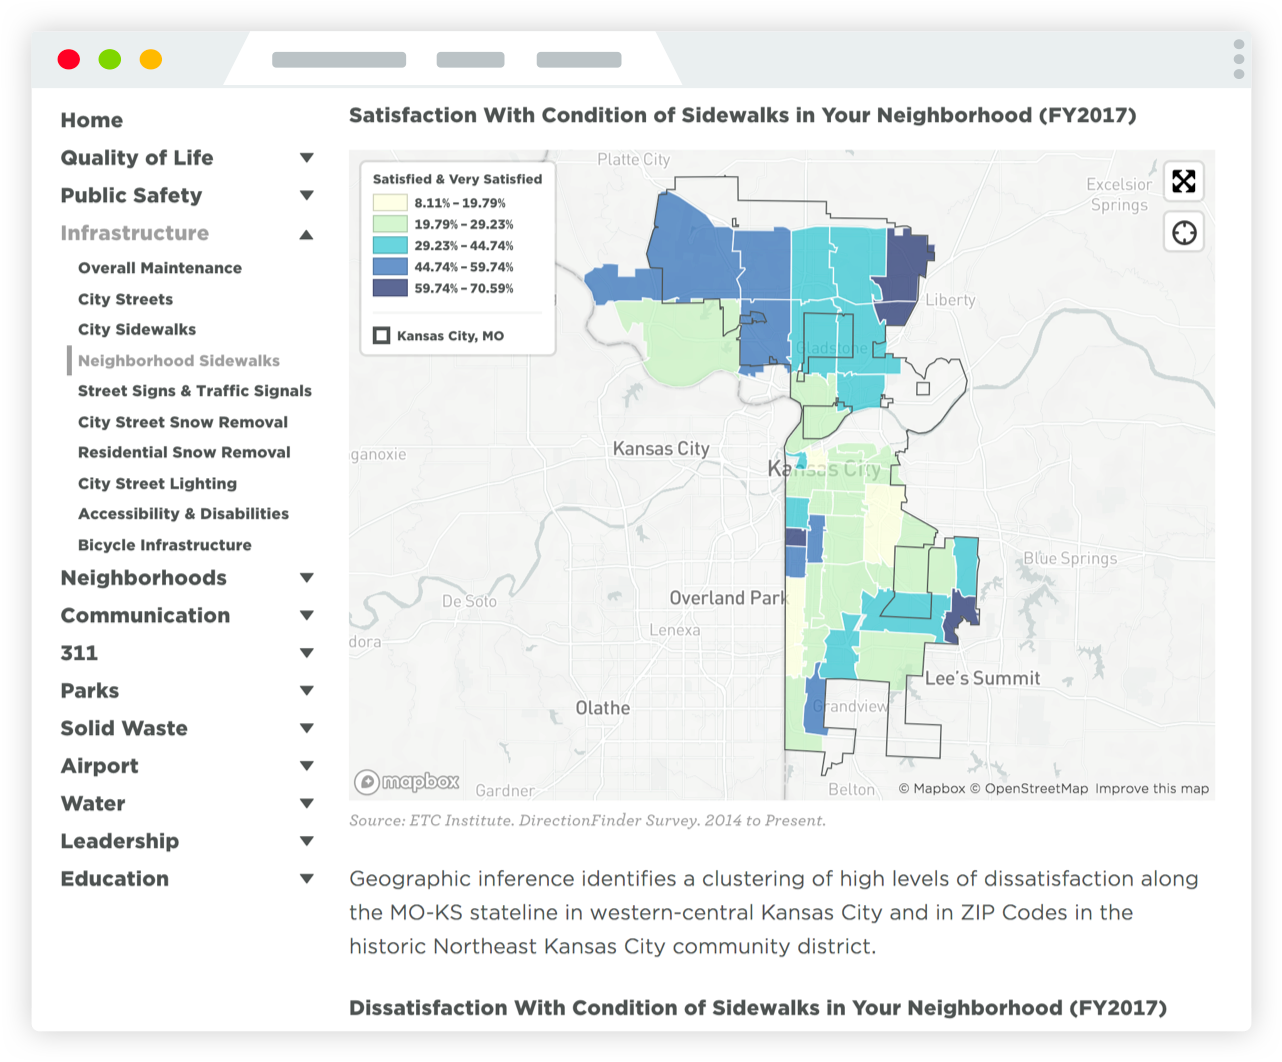 For Example The Map Below Shows That Residents In Zip Code 64127 Are Much Less Satisfied With Their Sidewalks Than Residents In Other Zip Codes